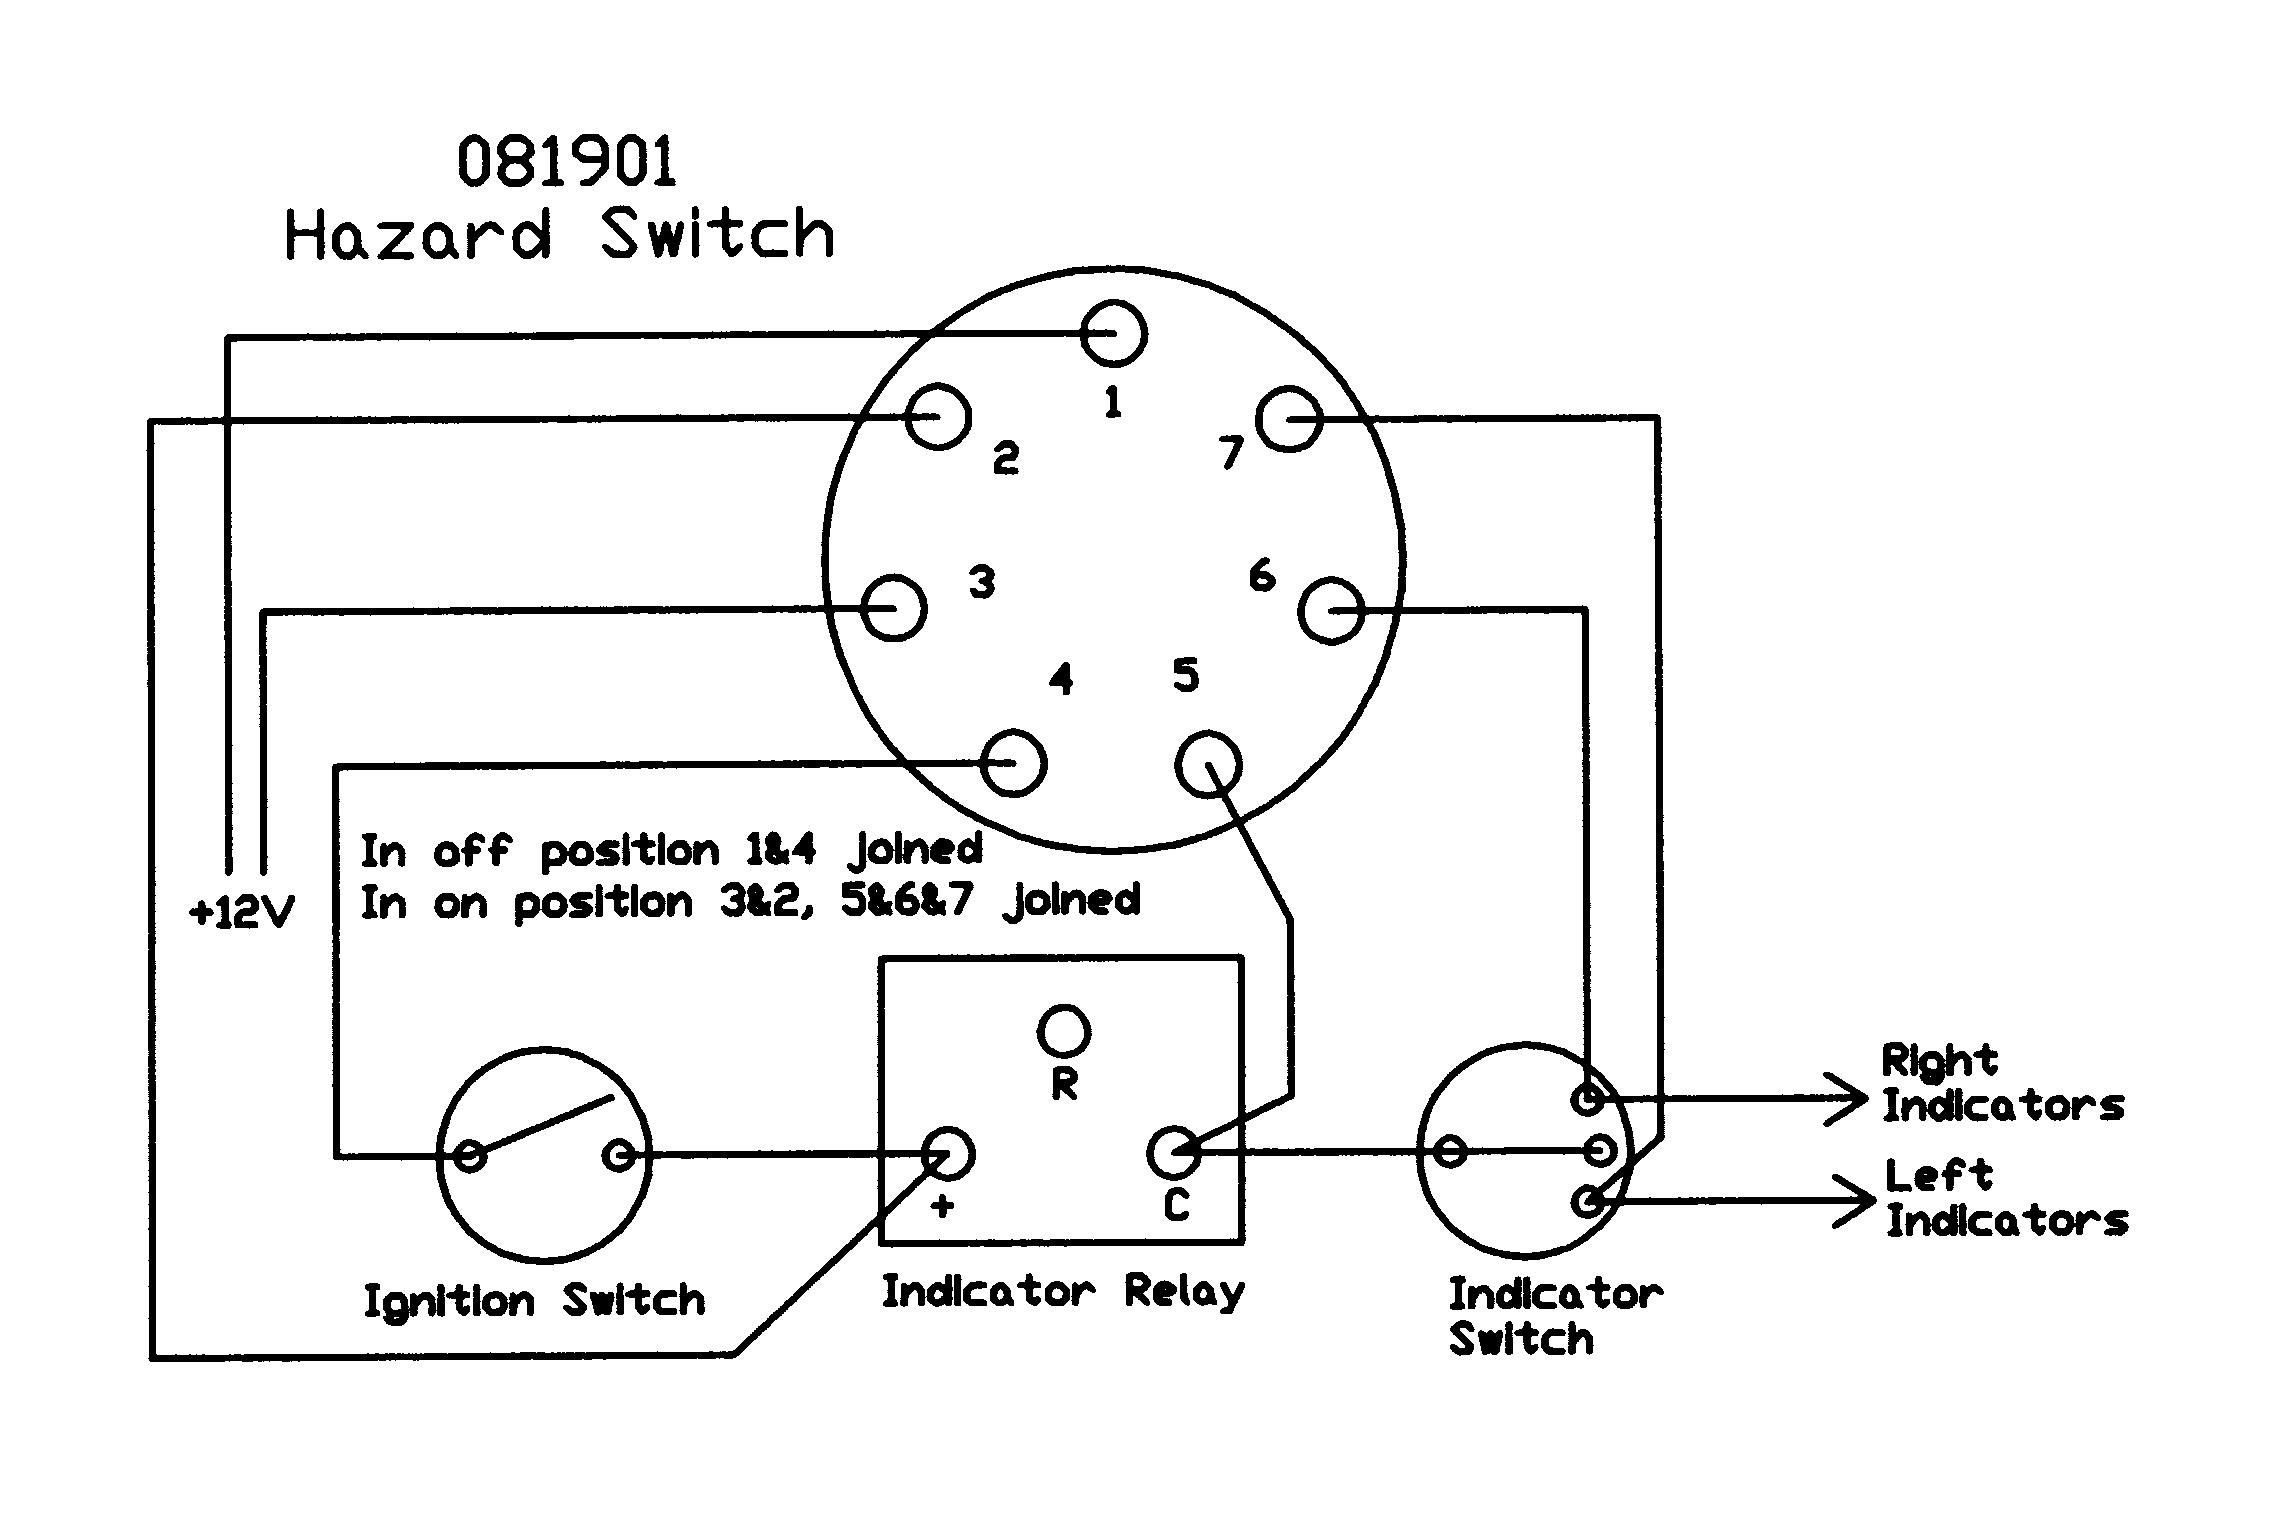 wiring diagram house uk wiring wiring diagrams 081901 wiring diagram wiring diagram